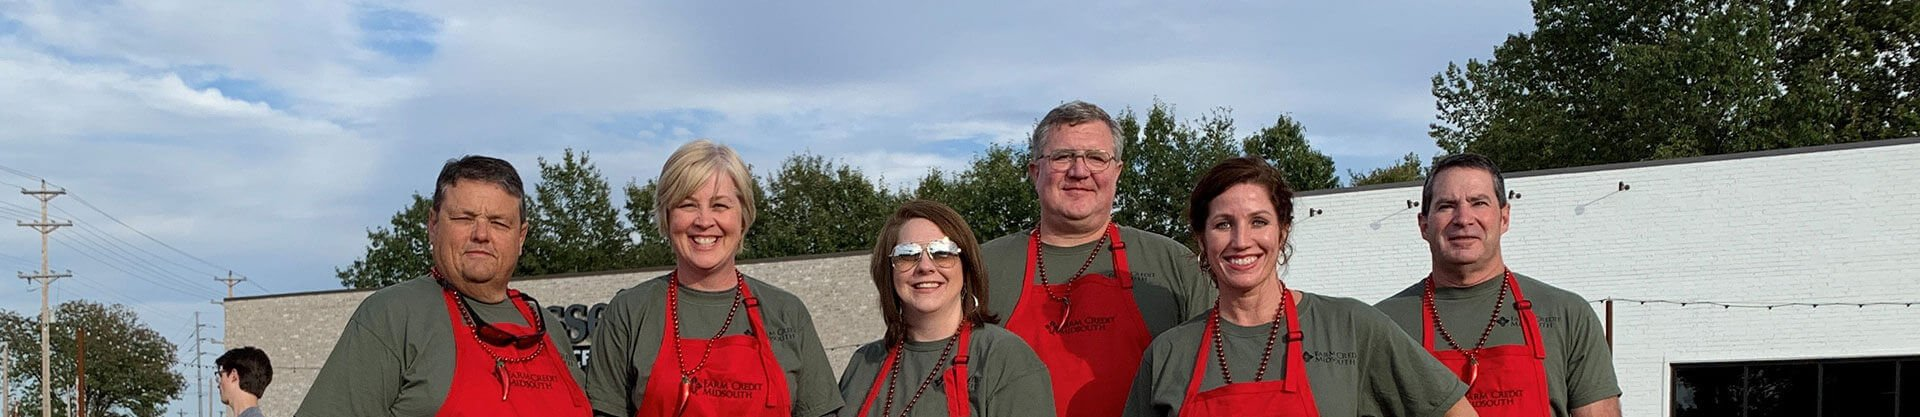 Farm Credit Midsouth employees participating in a chili cookoff